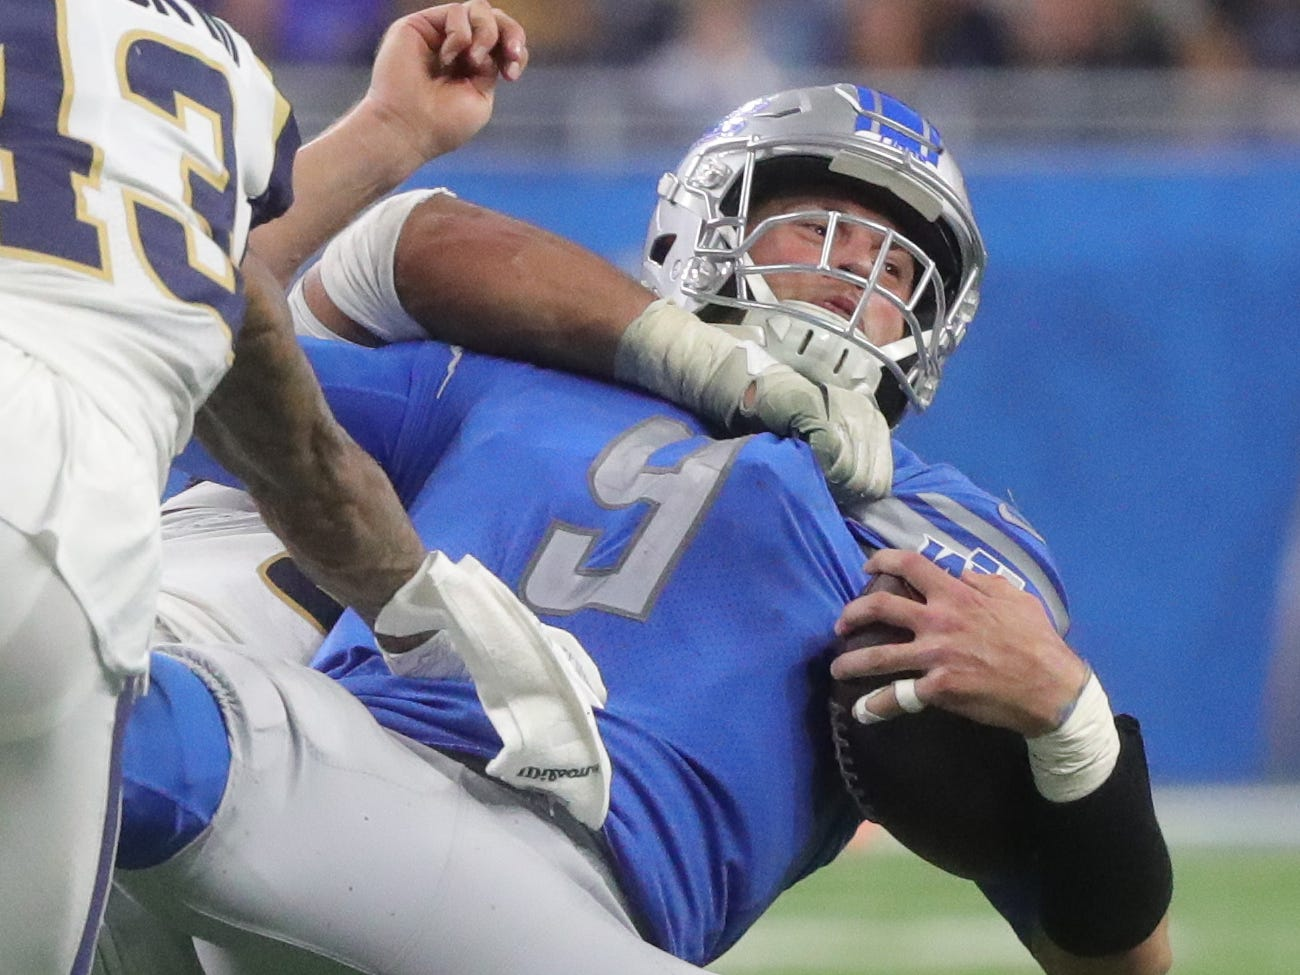 Detroit Lions' Matthew Stafford questionable vs. Arizona with back injury